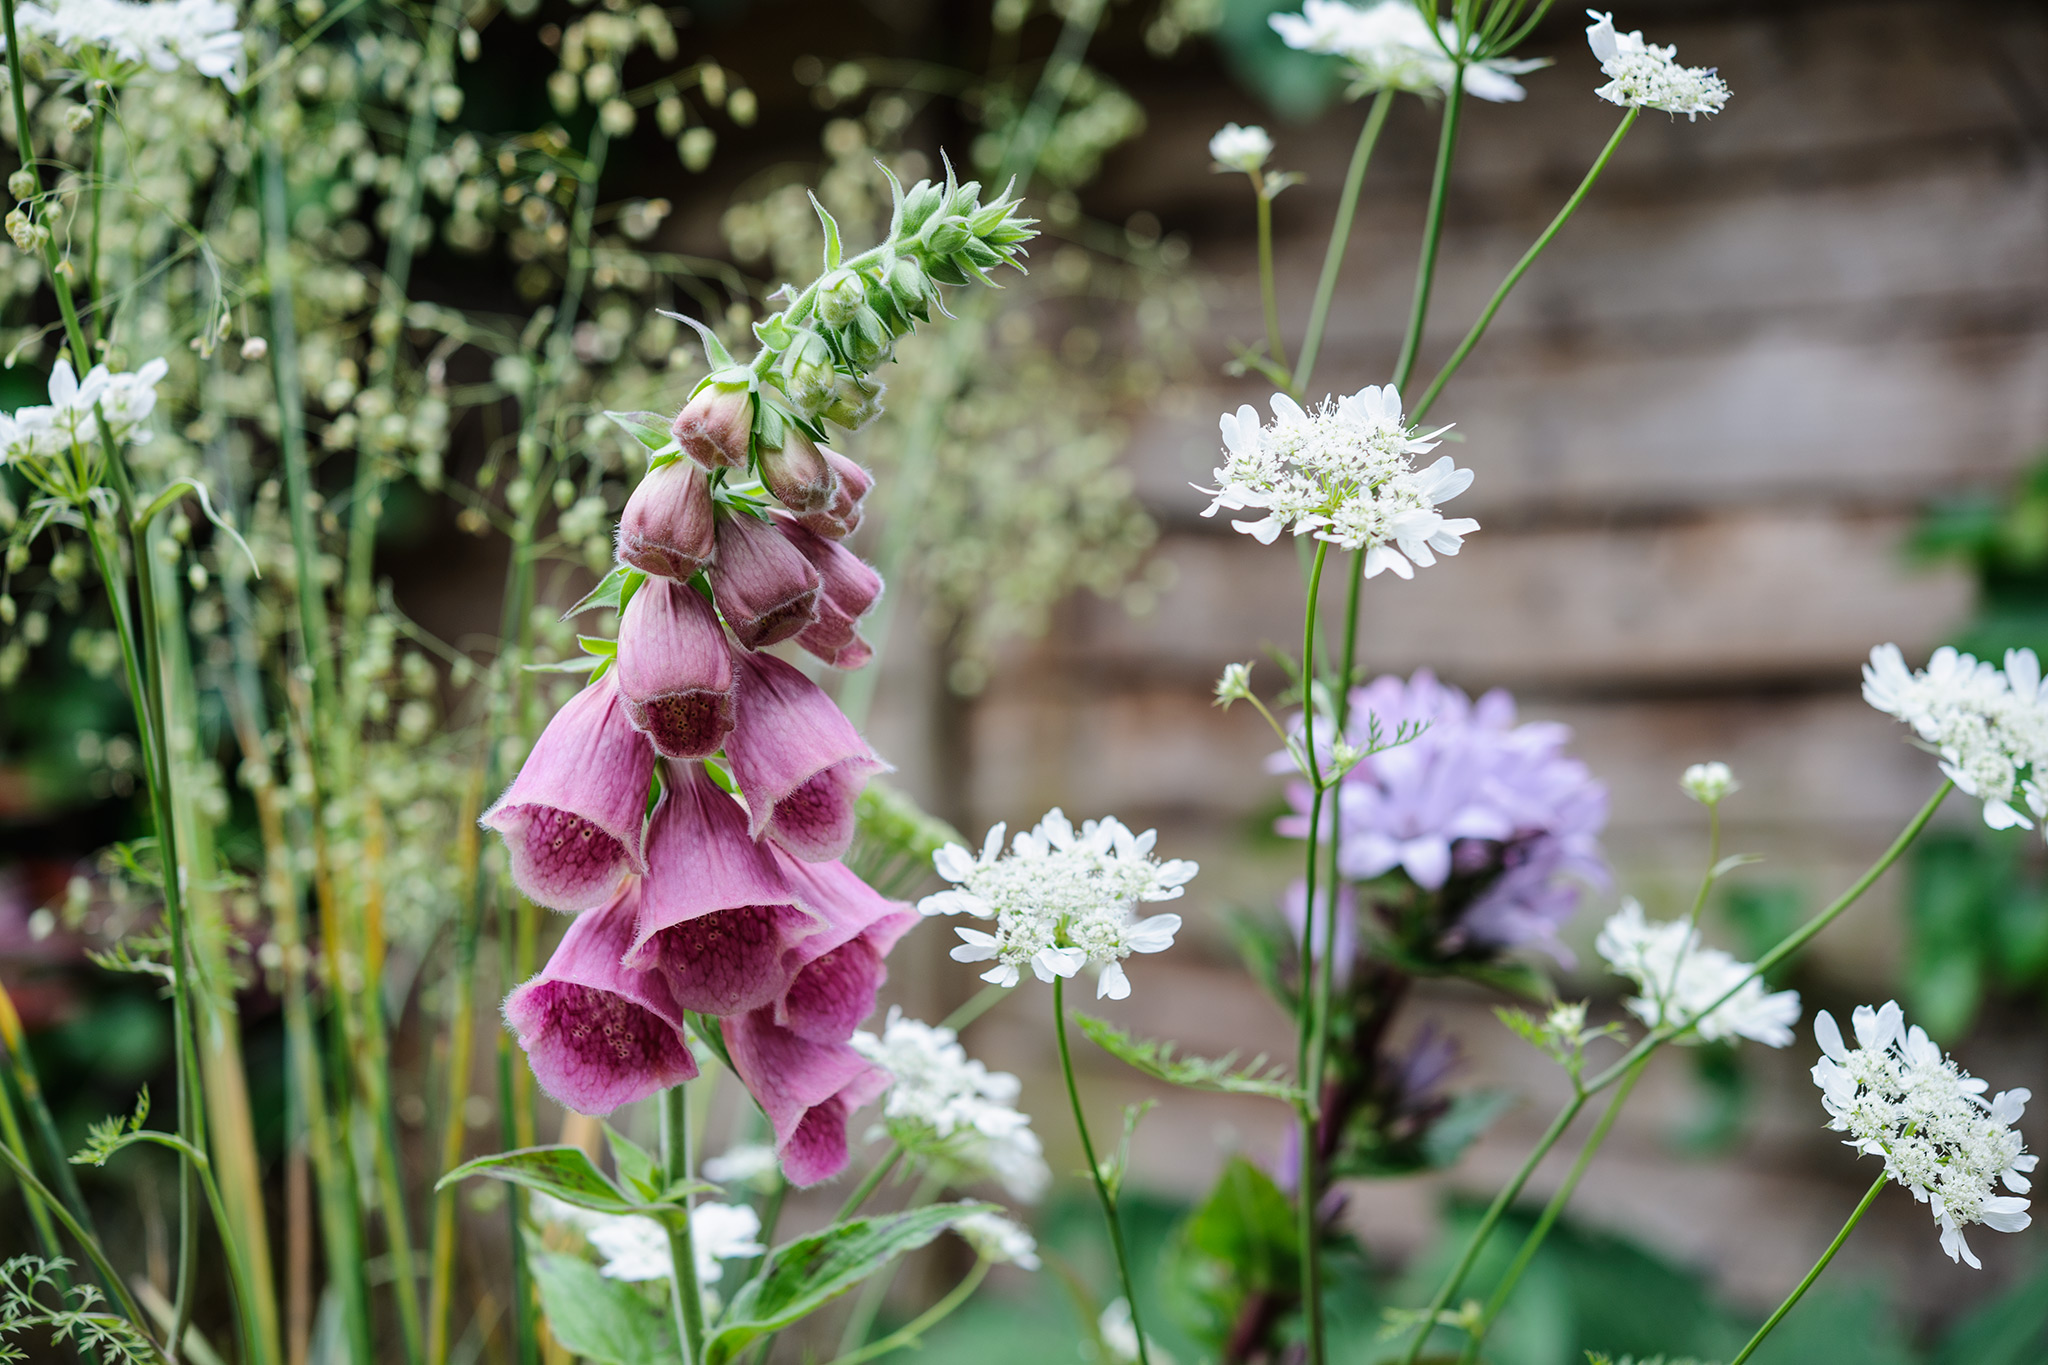 foxgloves-orlaya-and-greater-quaking-grass-3